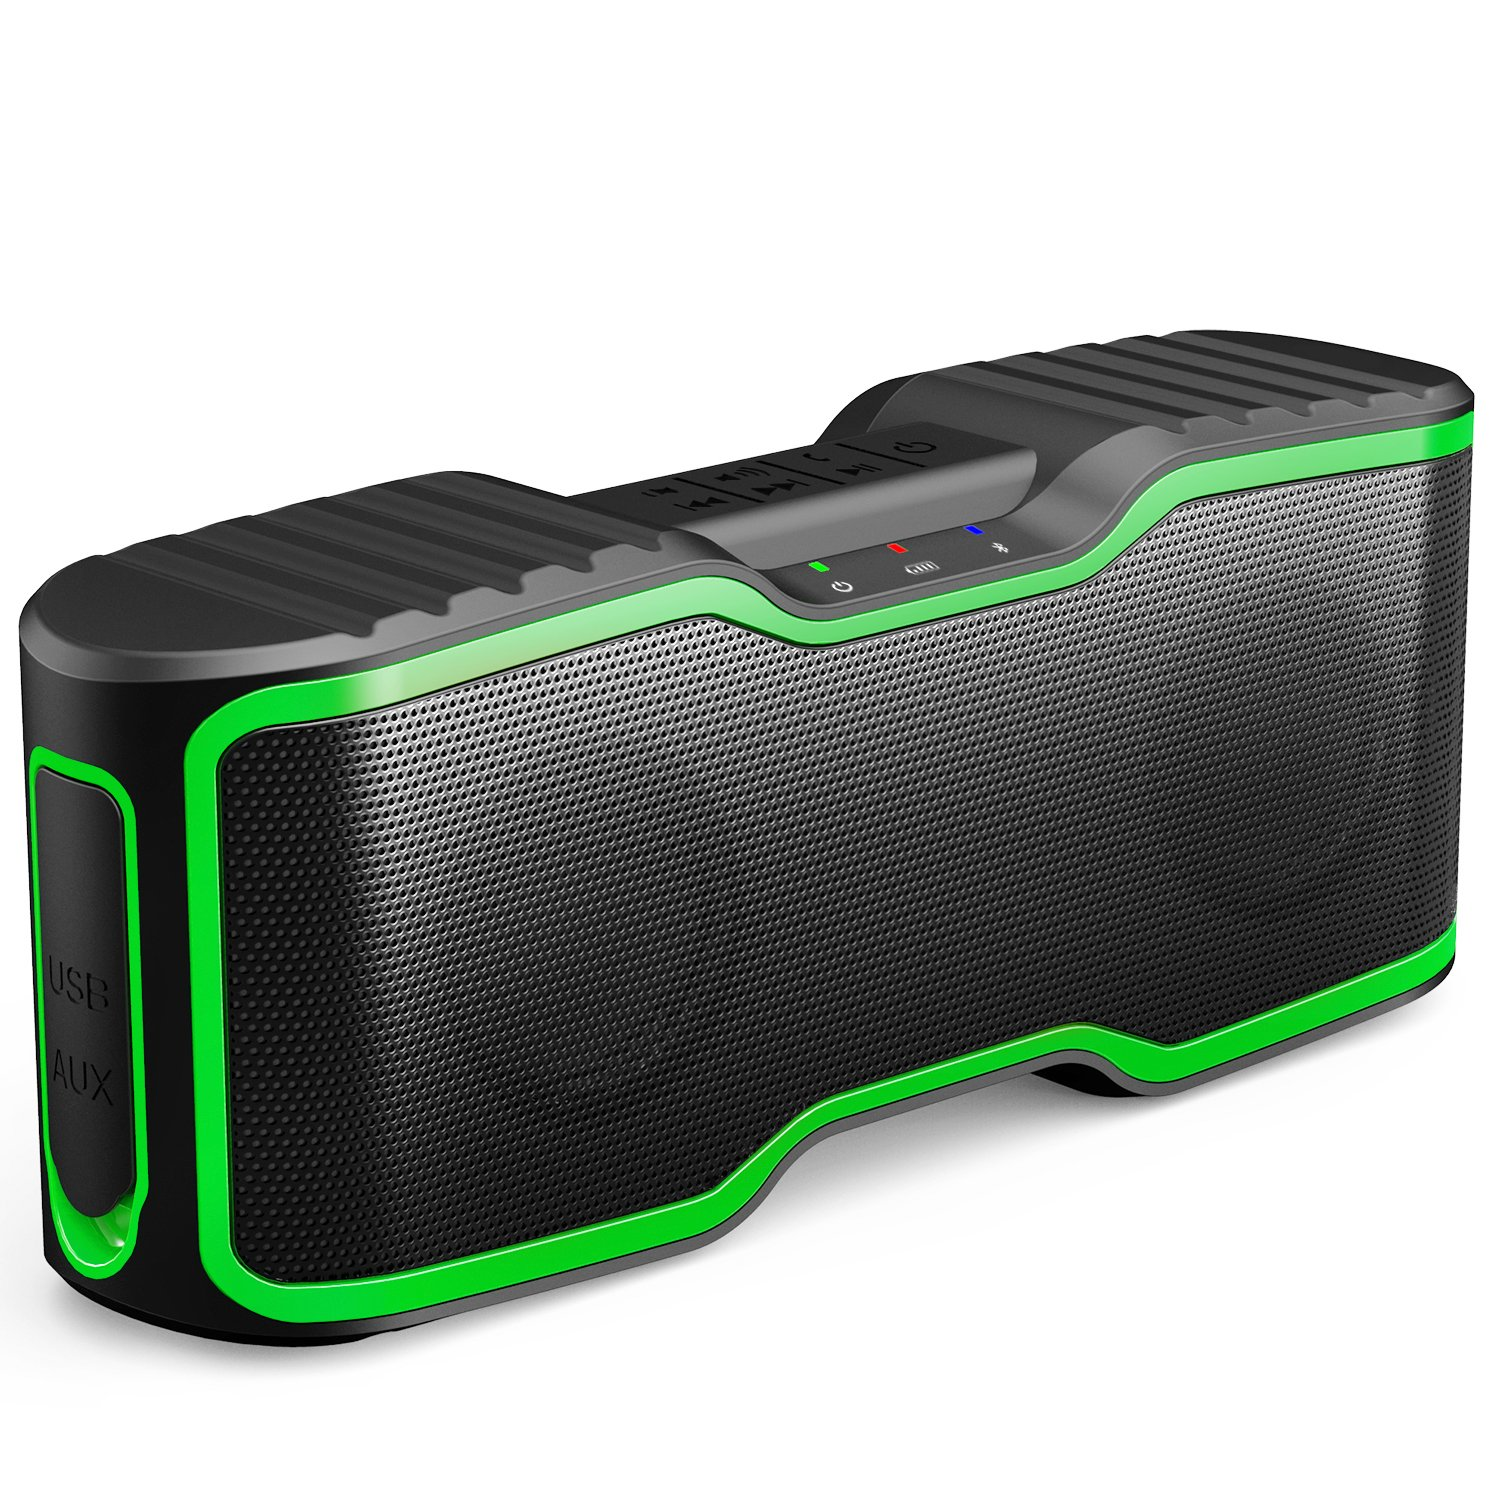 AOMAIS Sport II Portable Wireless Bluetooth Speakers 4.0 Waterproof IPX7, 20W Bass Sound, Stereo Pairing, Durable Design Backyard, Outdoors, Travel, Pool, Home Party (Green)